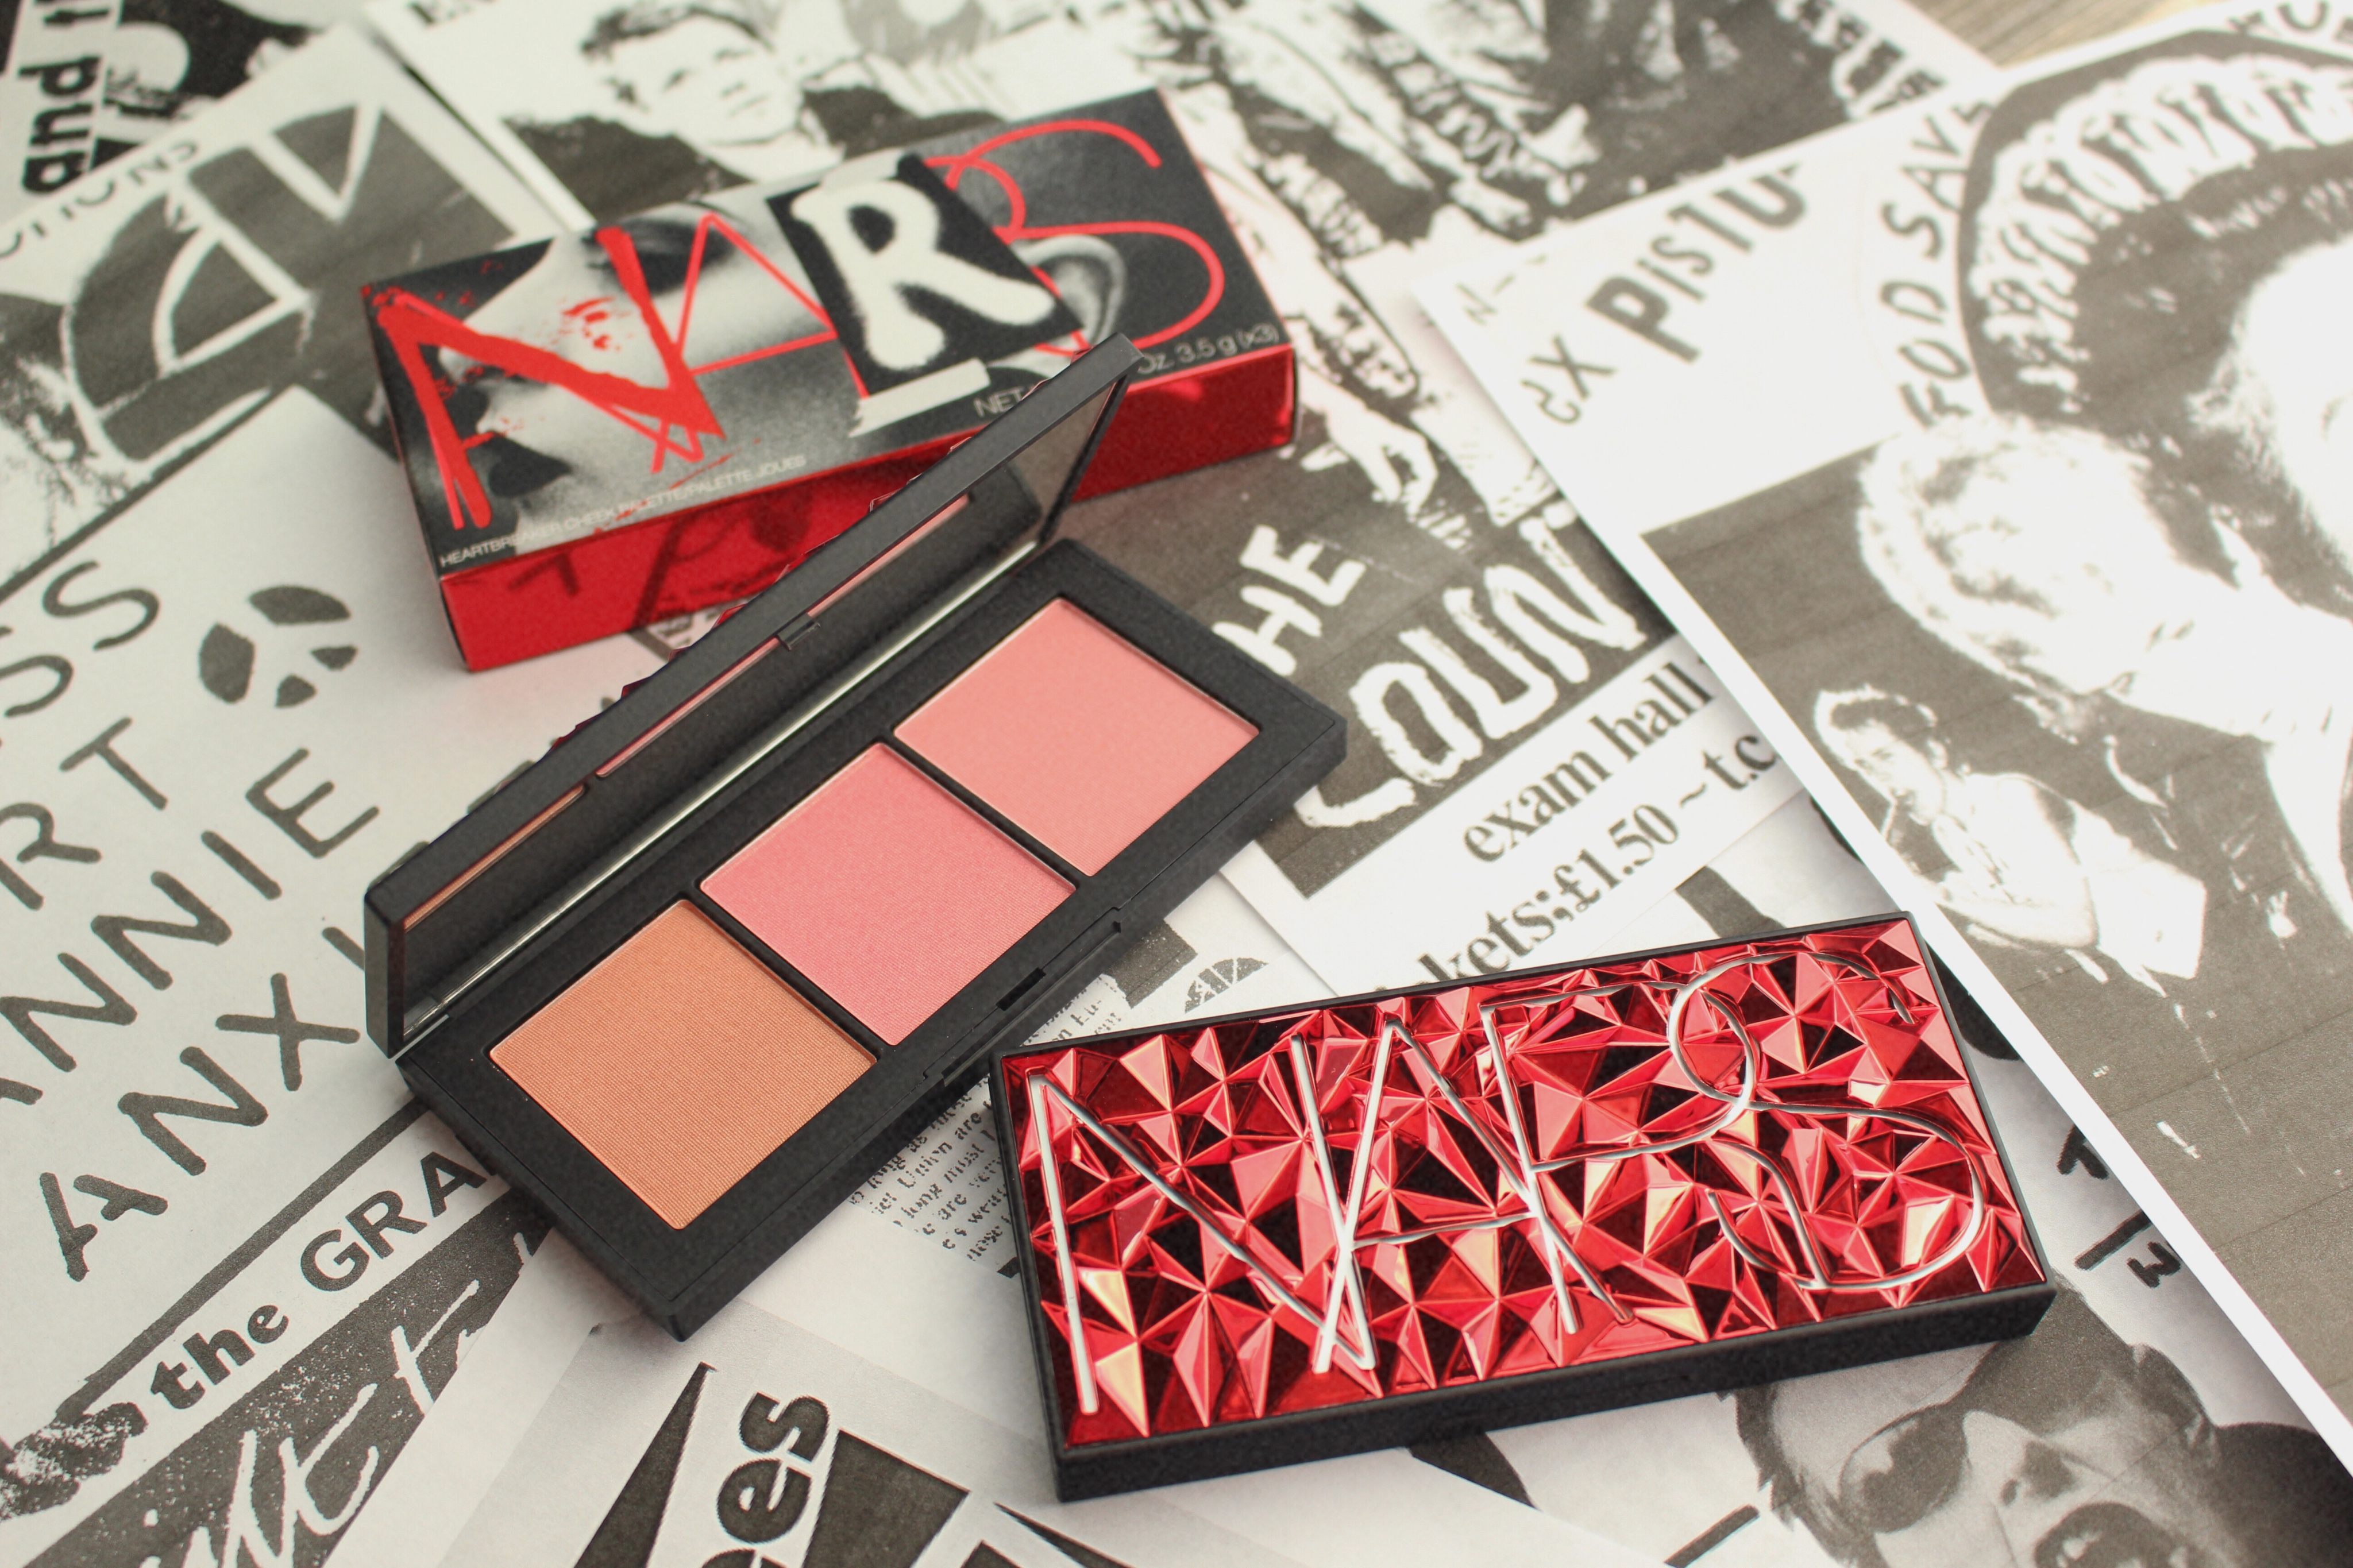 NARS 2018 Holiday Collection